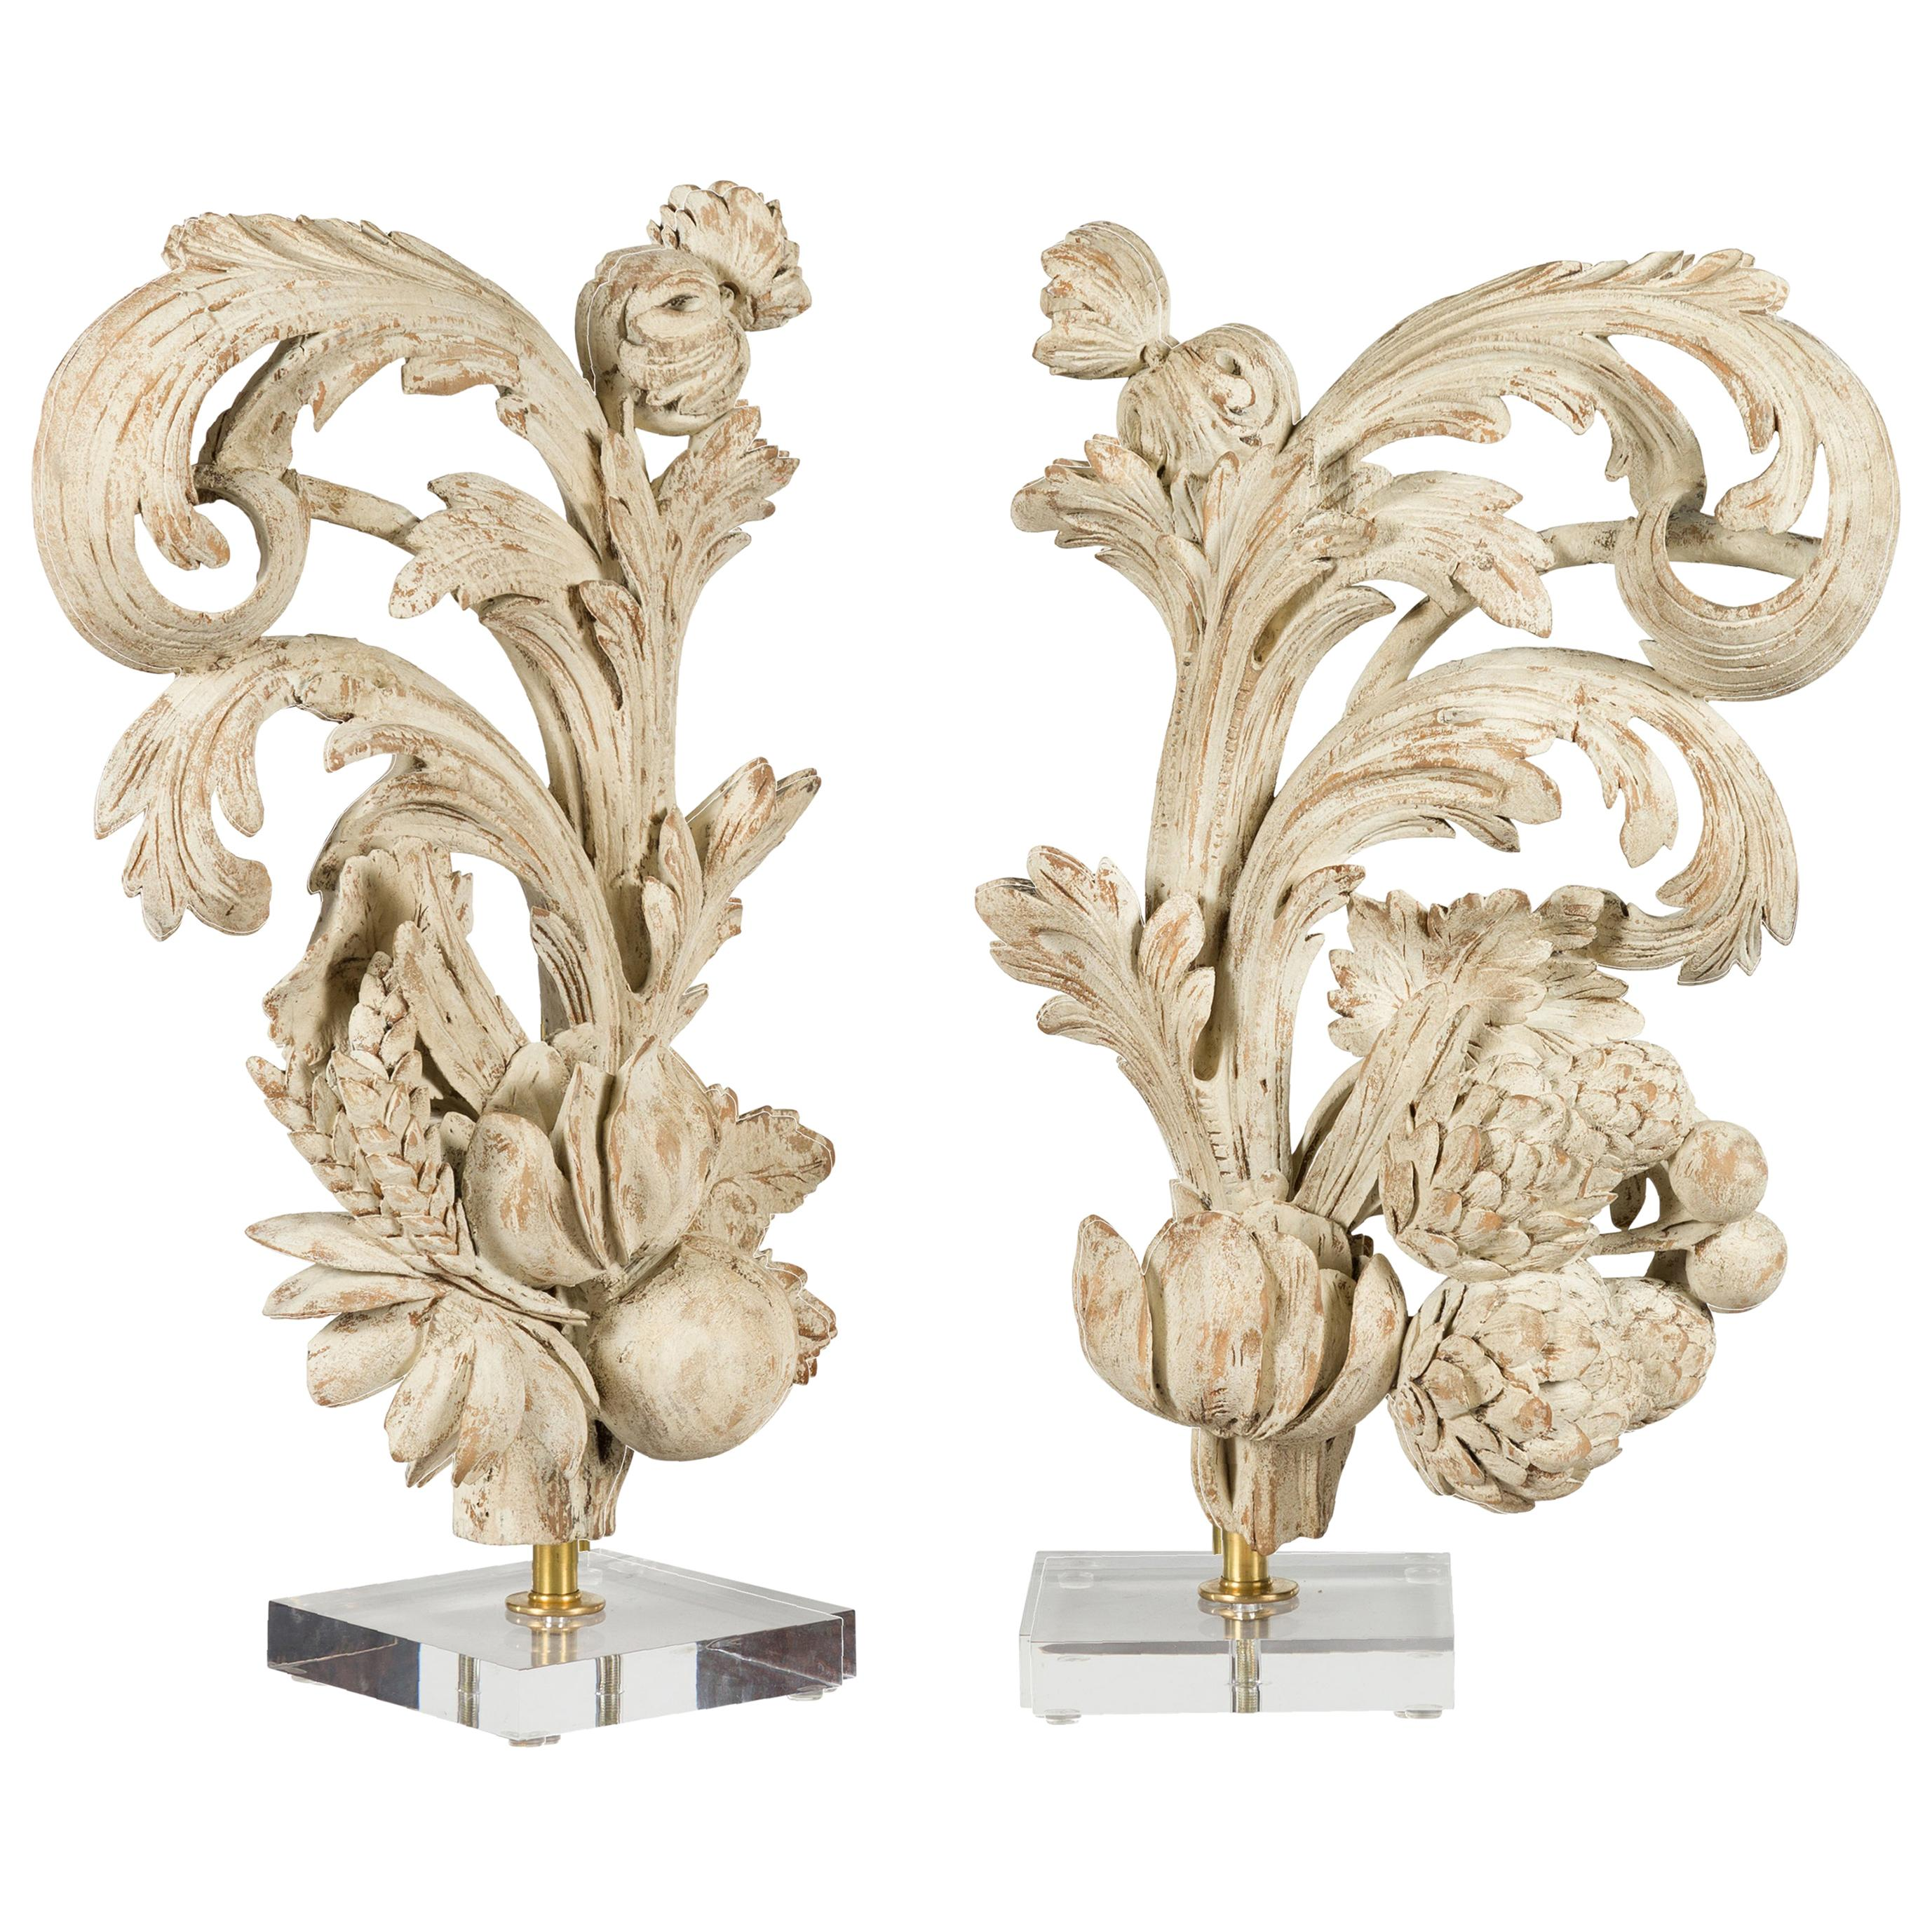 Pair of Italian 19th Century Carved Fruit and Foliage Fragments on Lucite Bases